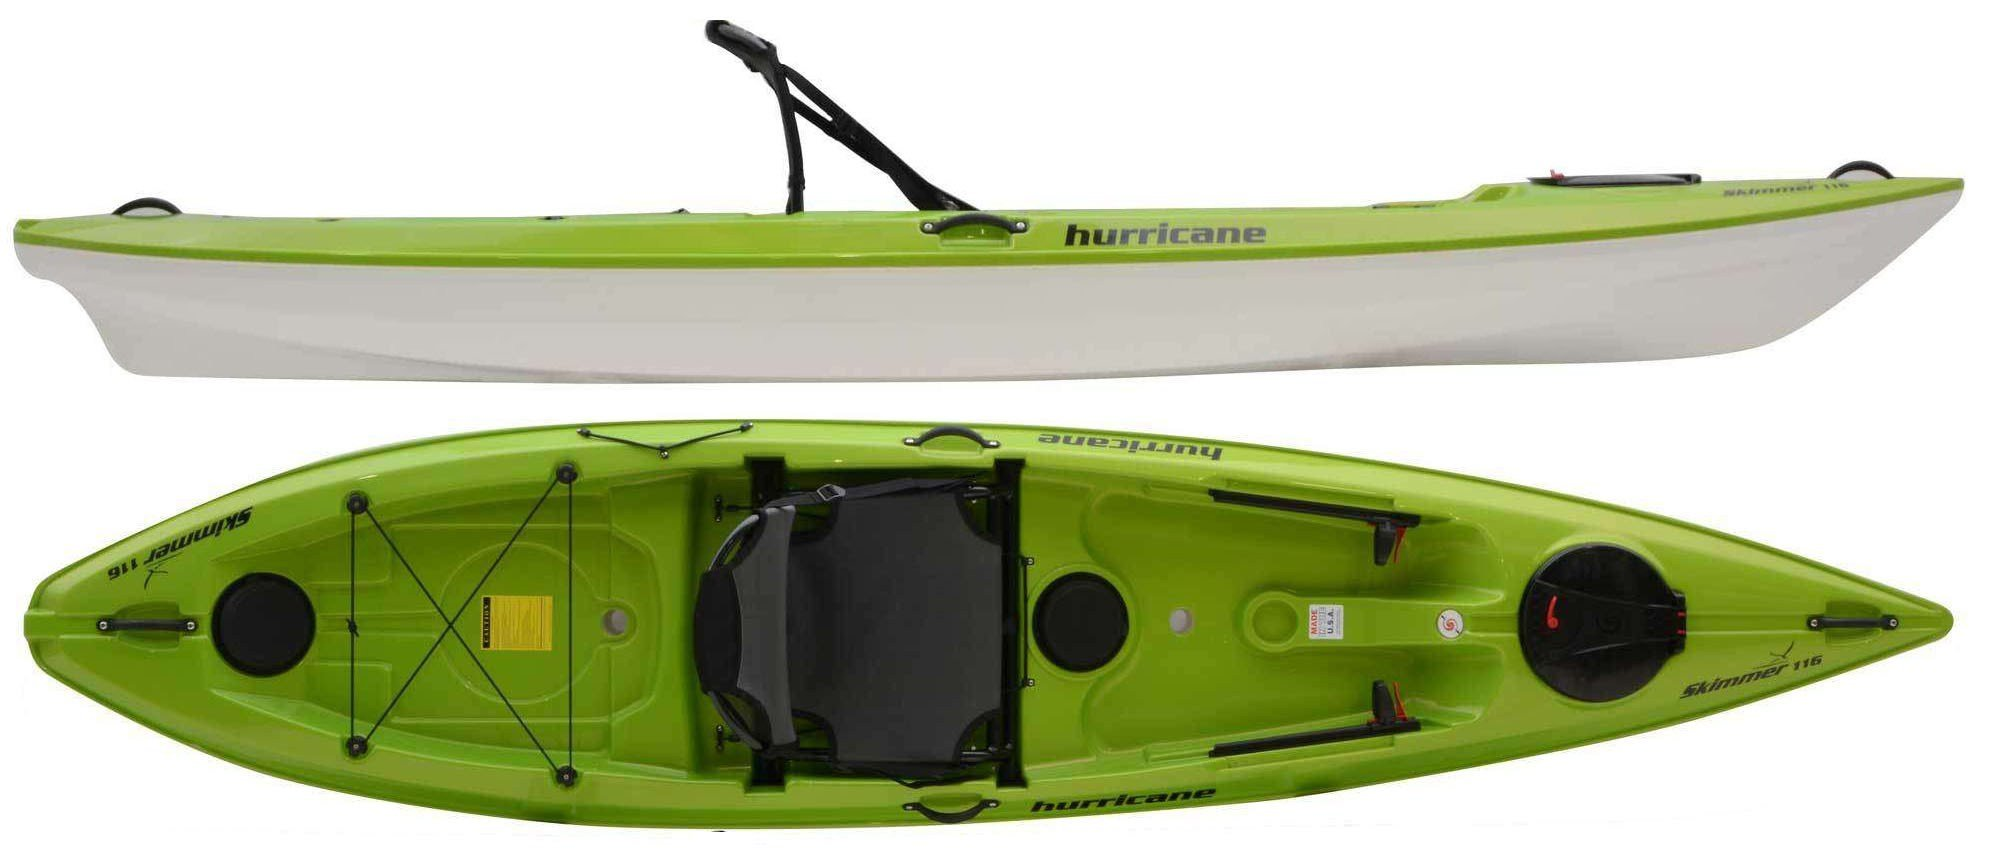 Hurricane Kayaks Skimmer 116 - W/First Class Seat